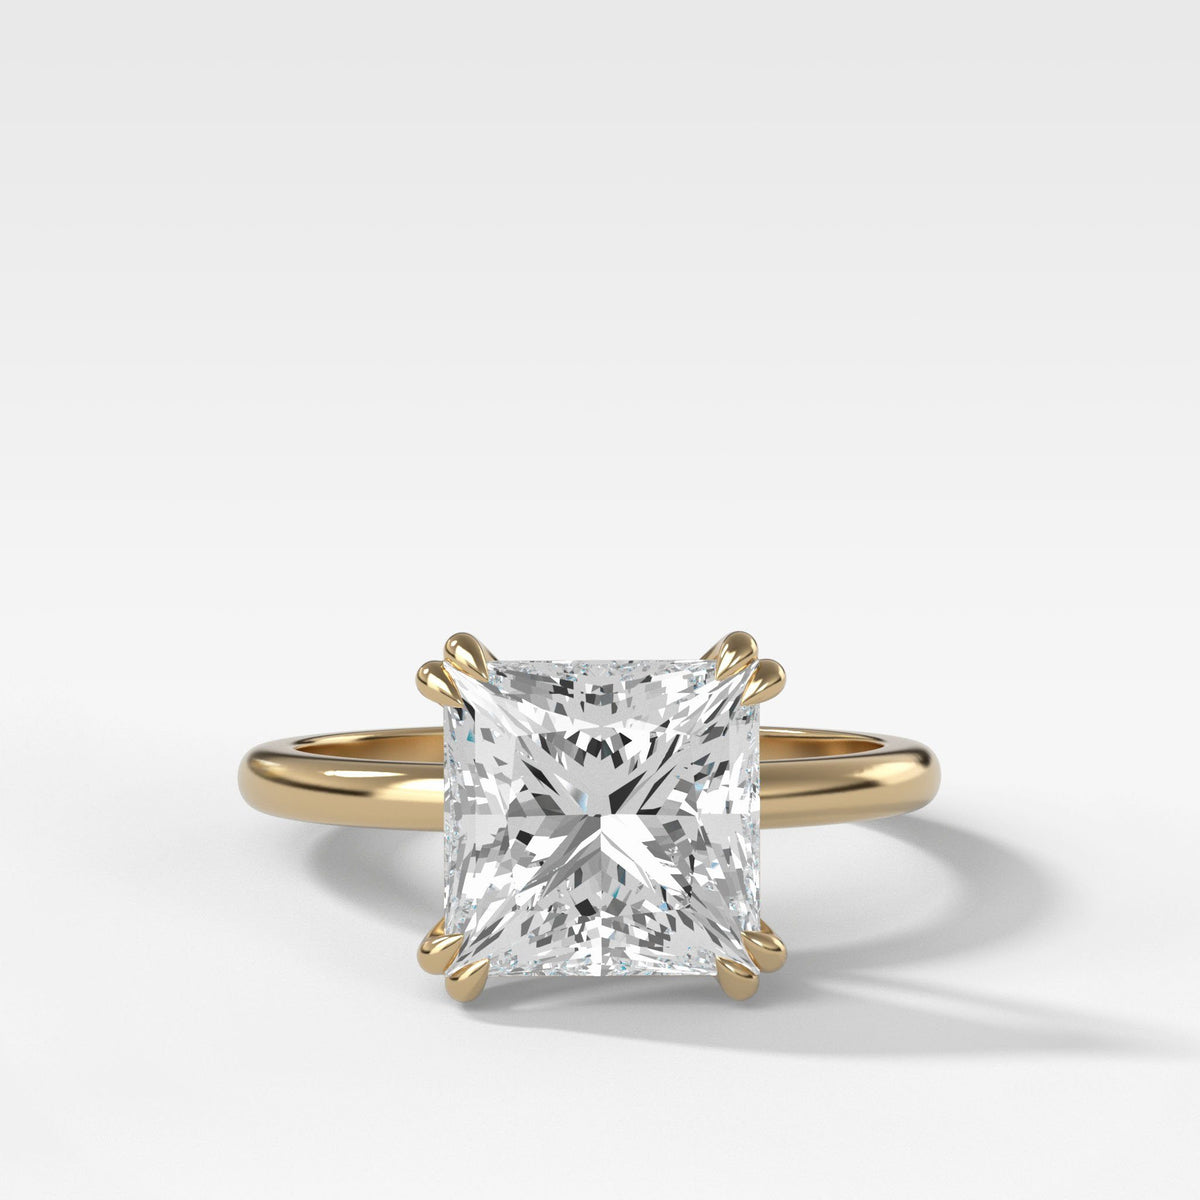 Signature Cathedral Solitaire With Princess Cut In Yellow Gold By Good Stone